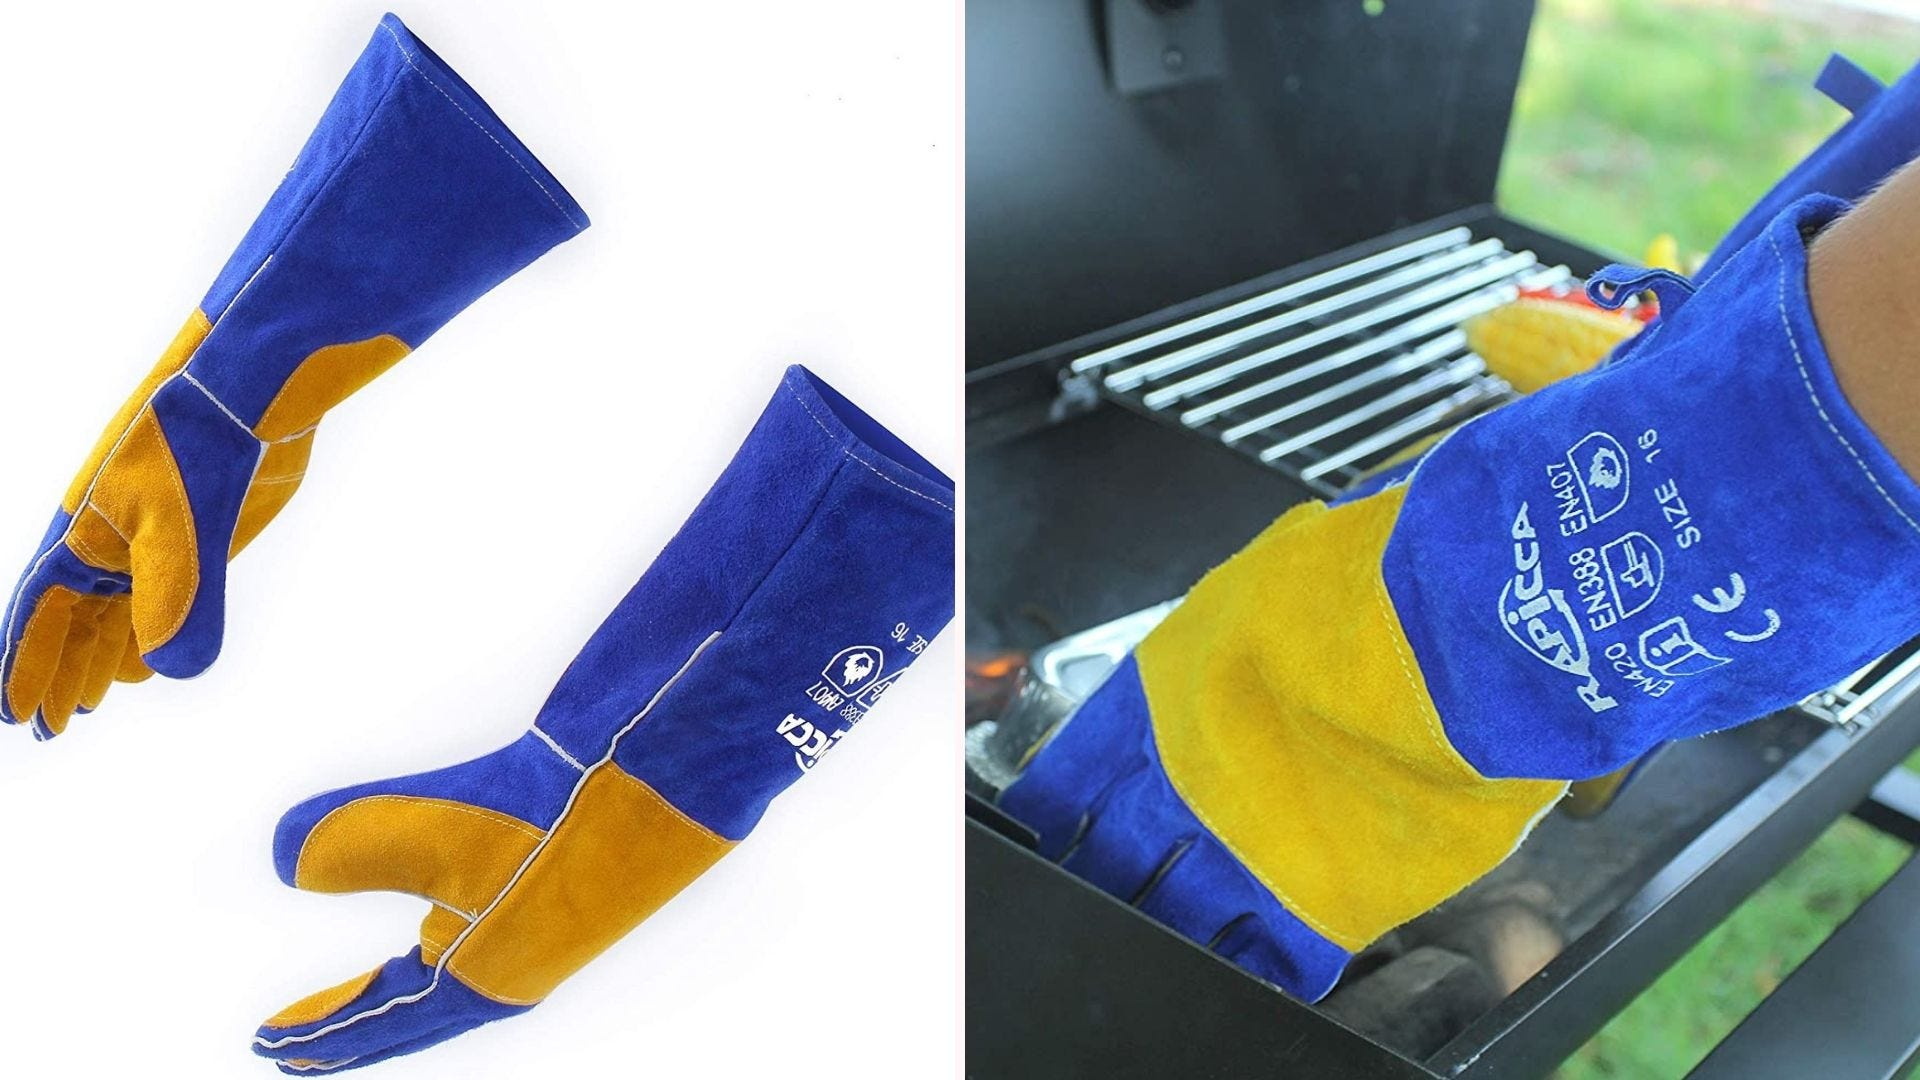 a pair of blue and yellow long gloves shown on a white background and on a hand